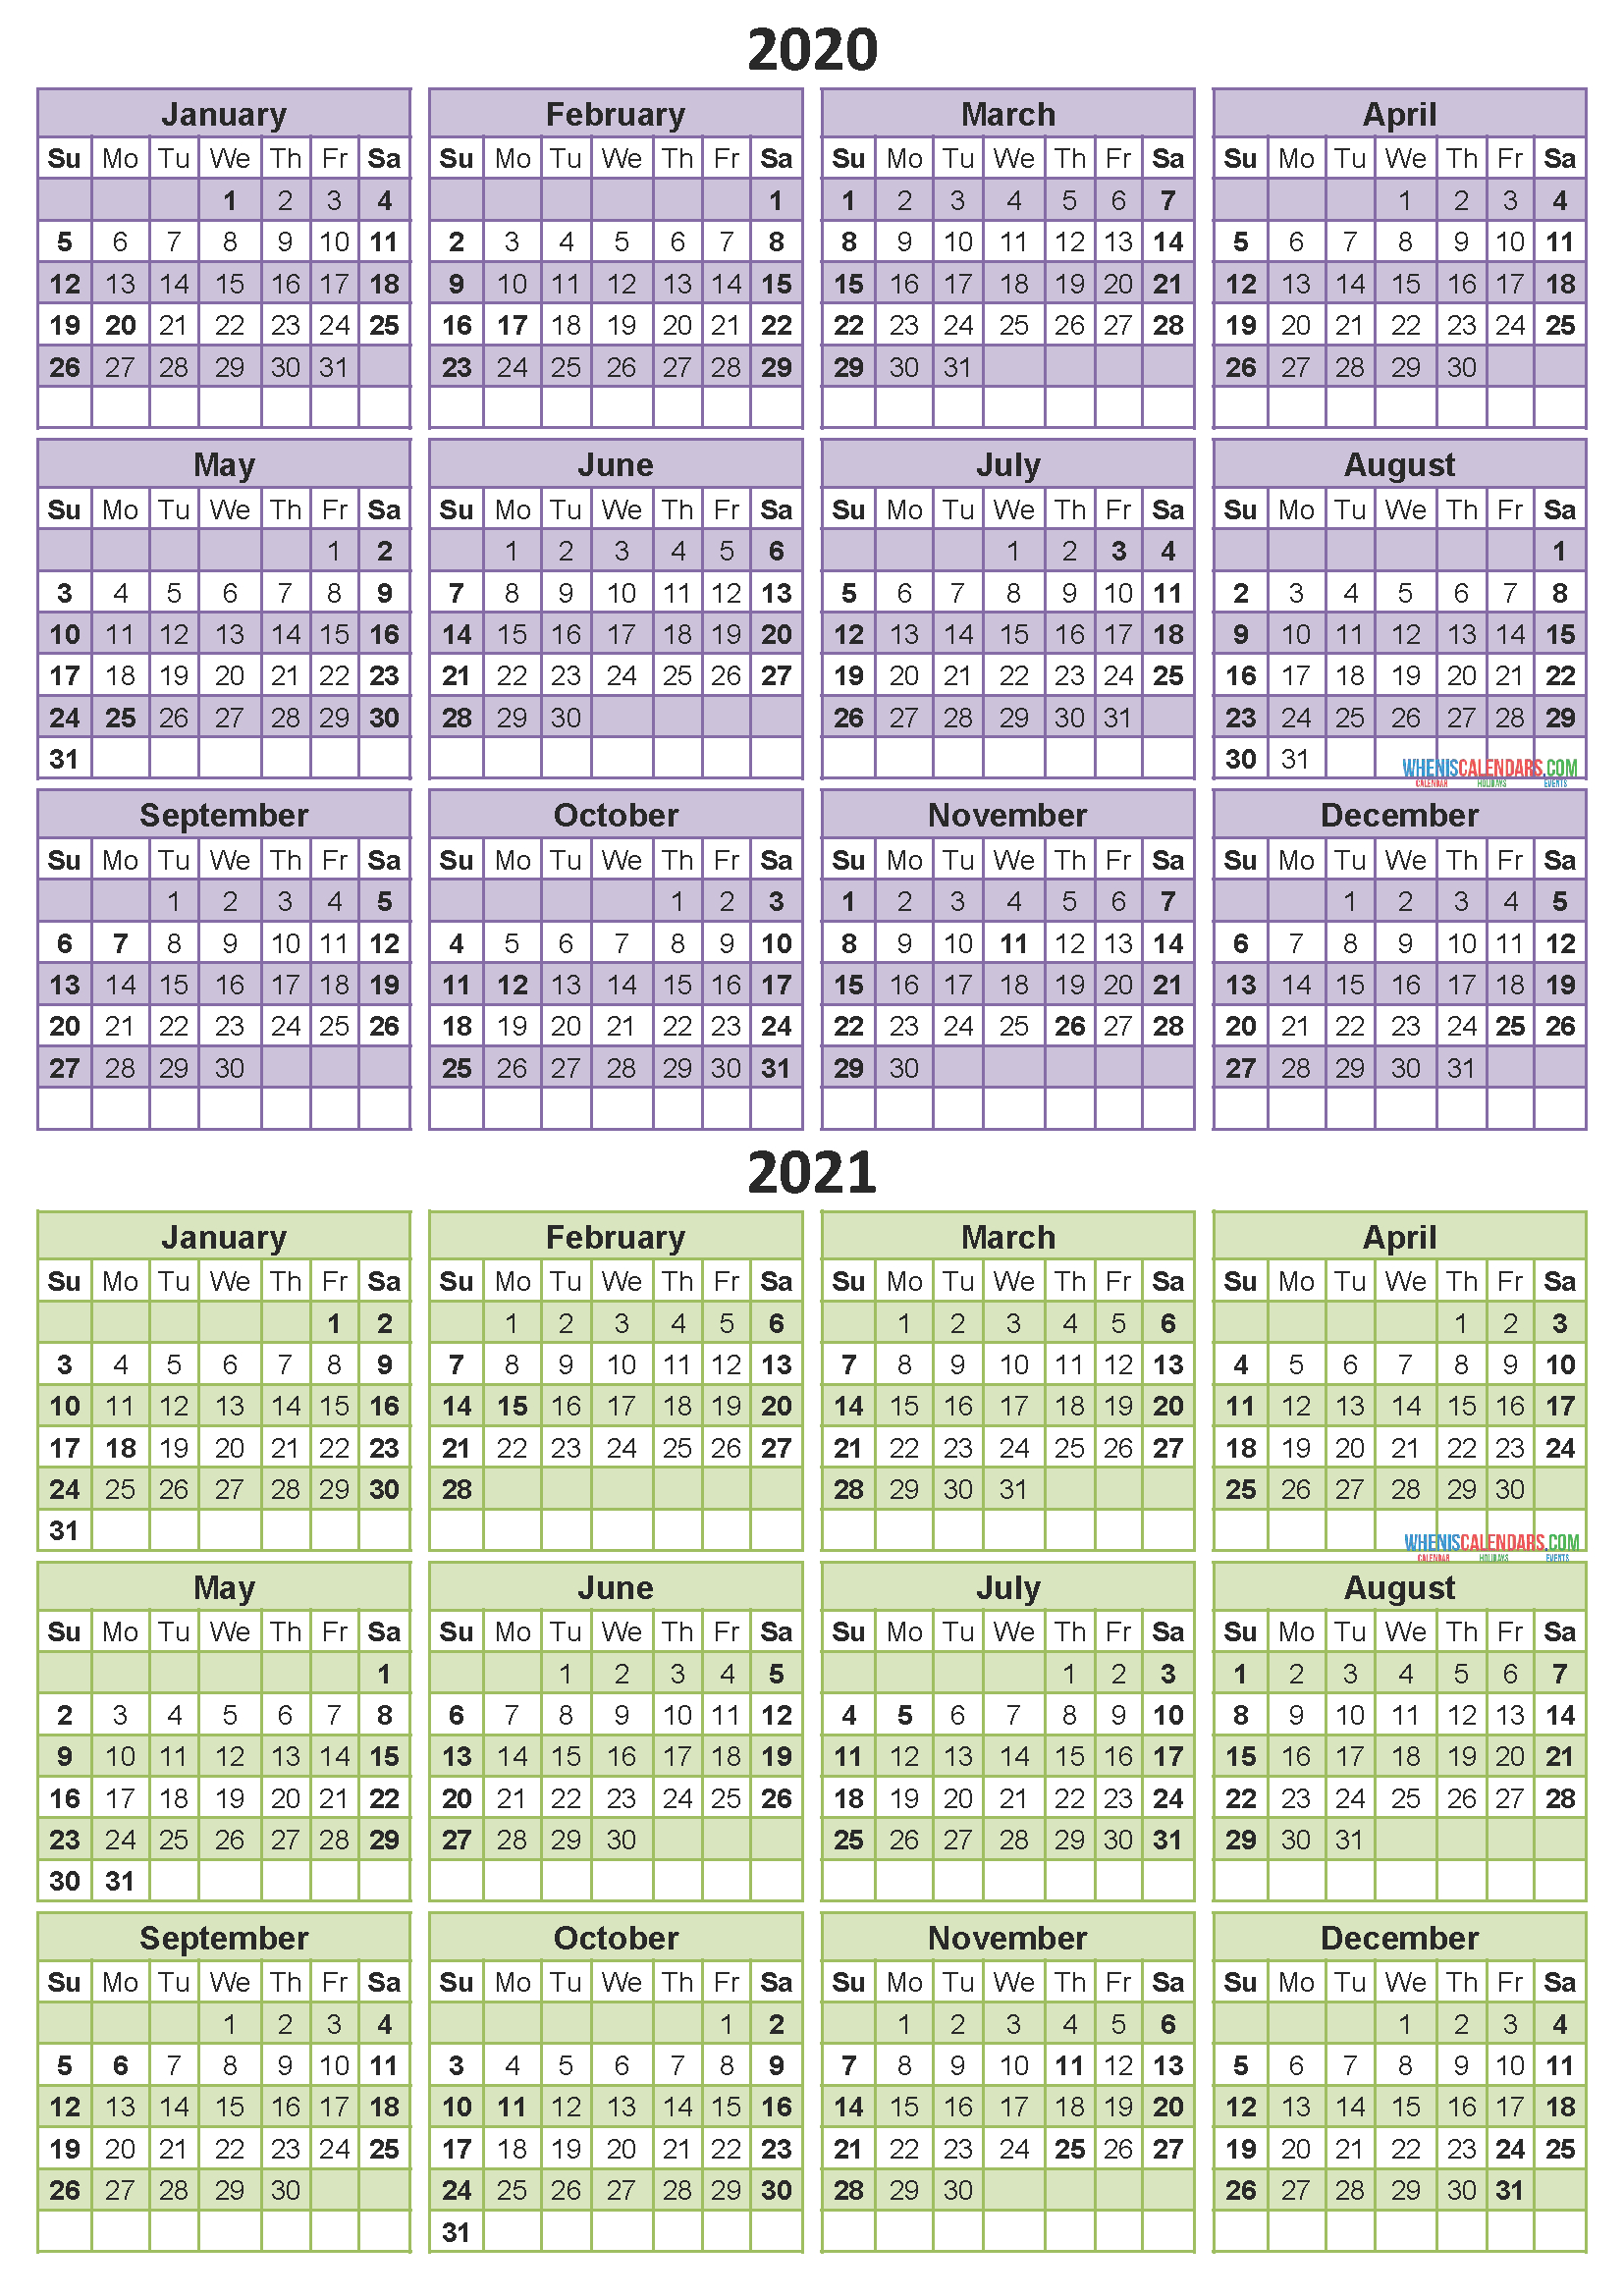 2 Year Calendar Printable 2020 2021 Word Pdf Image